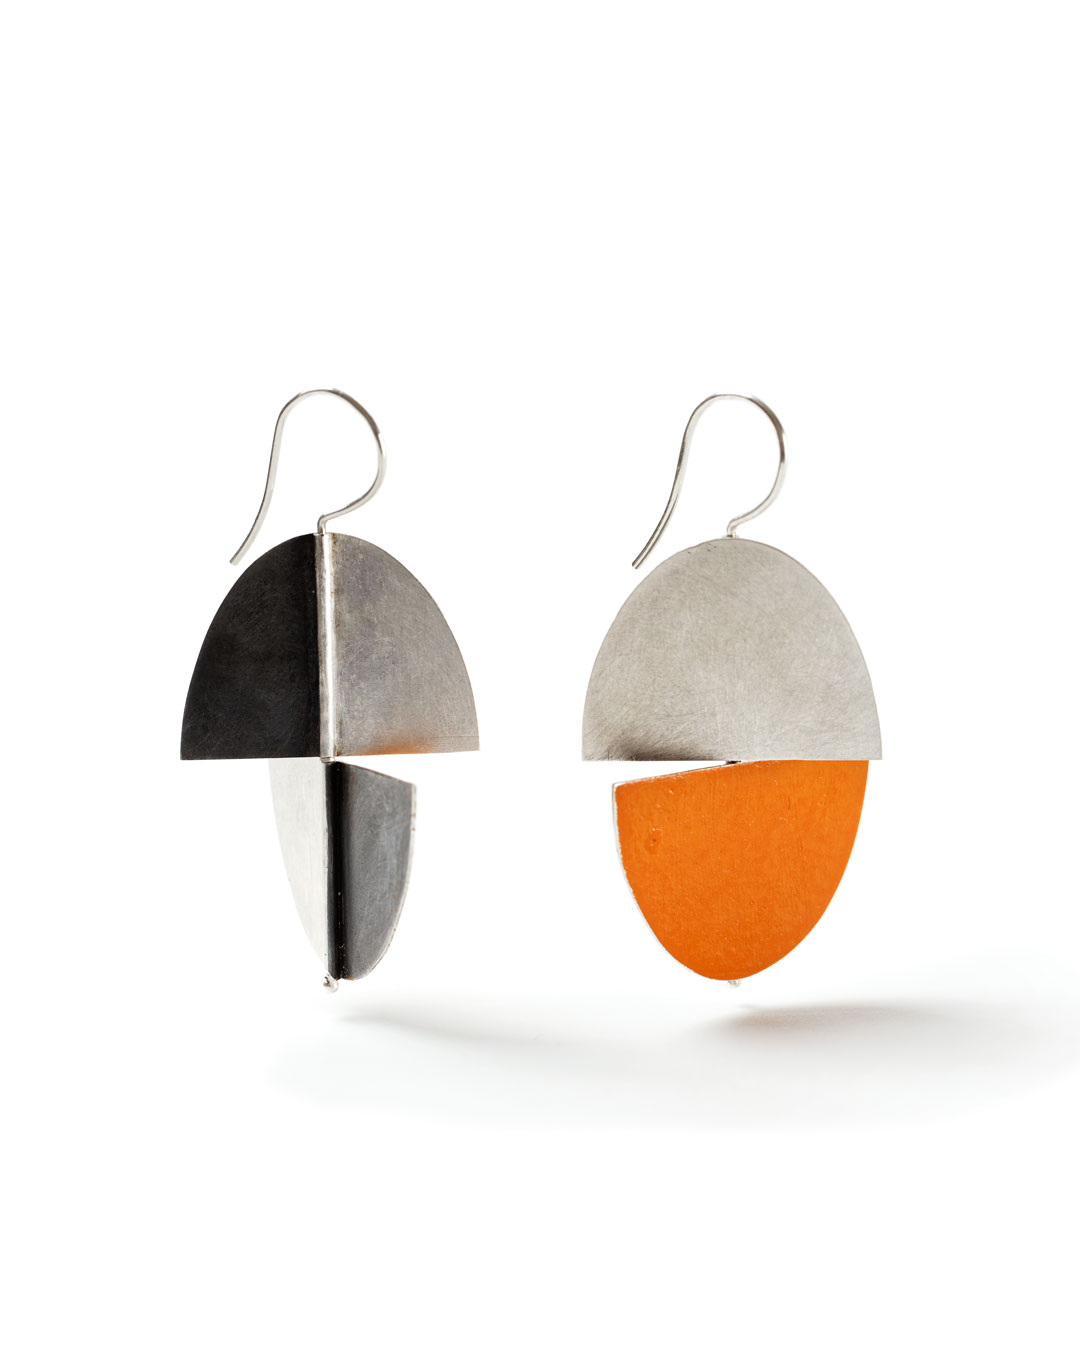 Julie Mollenhauer, untitled, 2018, earrings; silver, acrylic paint, 45 x 30 x 2 mm, €800